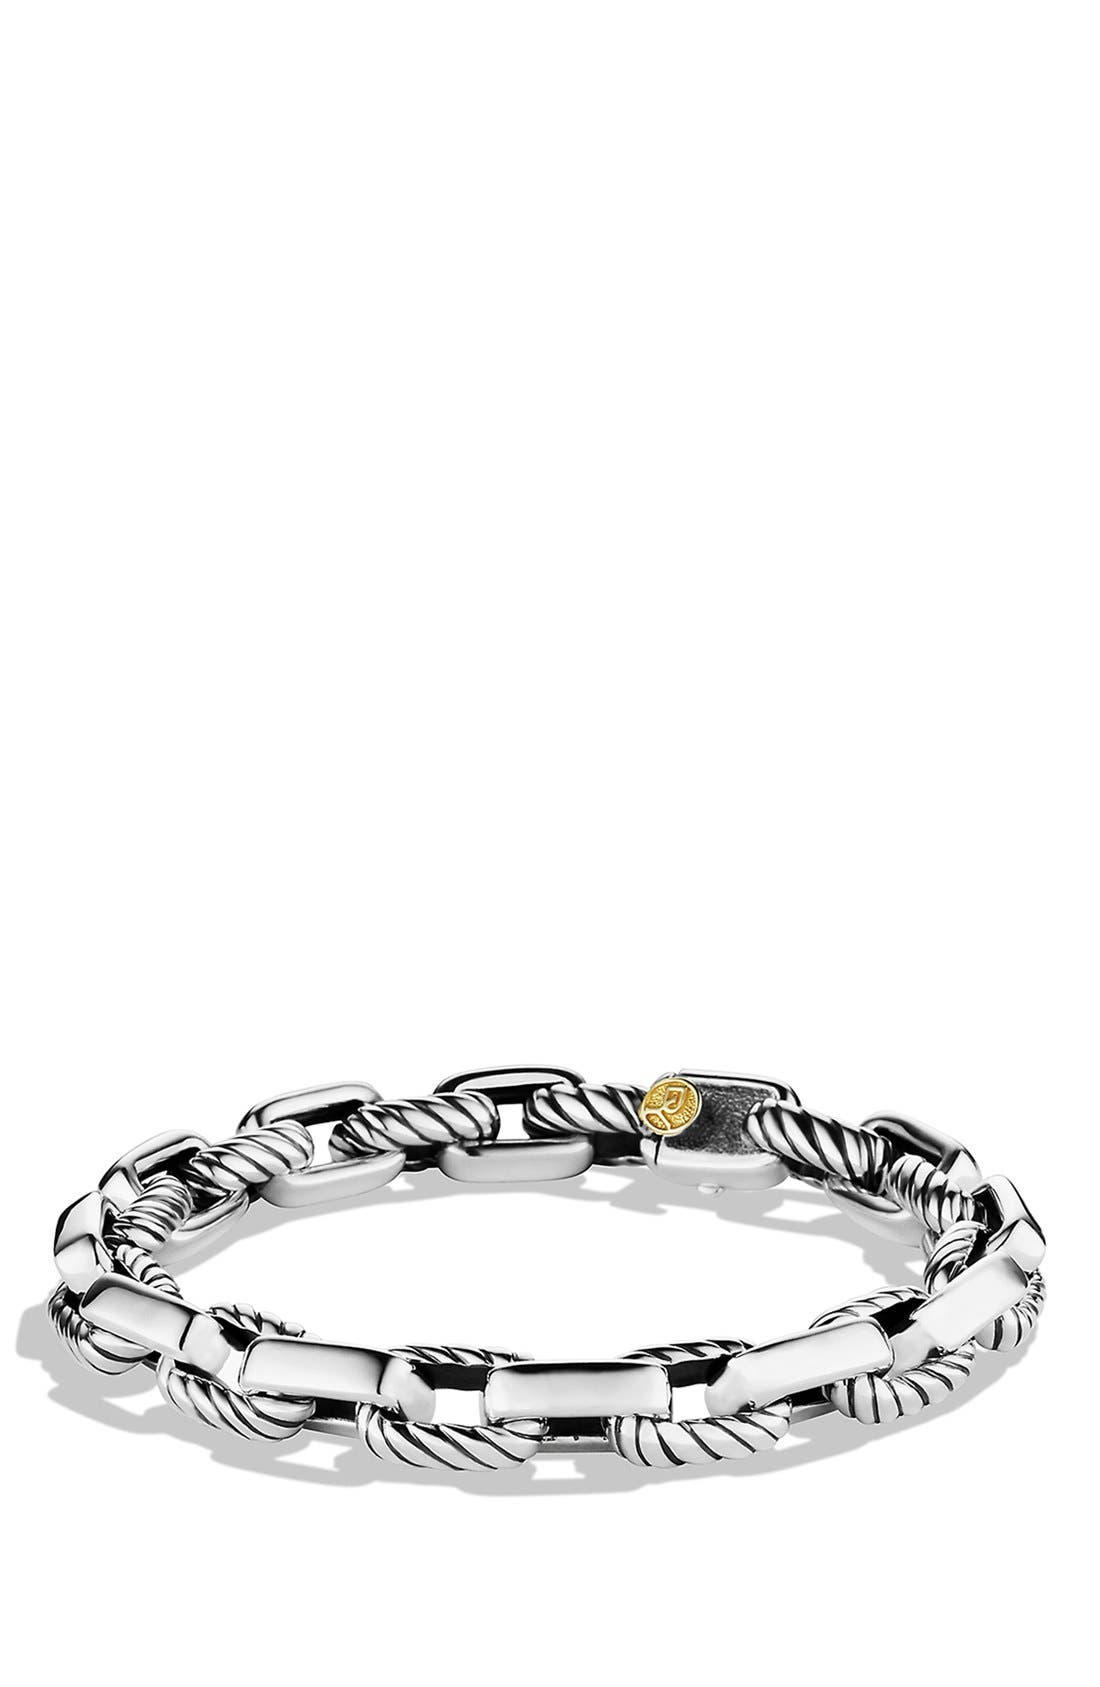 Alternate Image 1 Selected - David Yurman 'Chain' Empire Link Bracelet with Gold